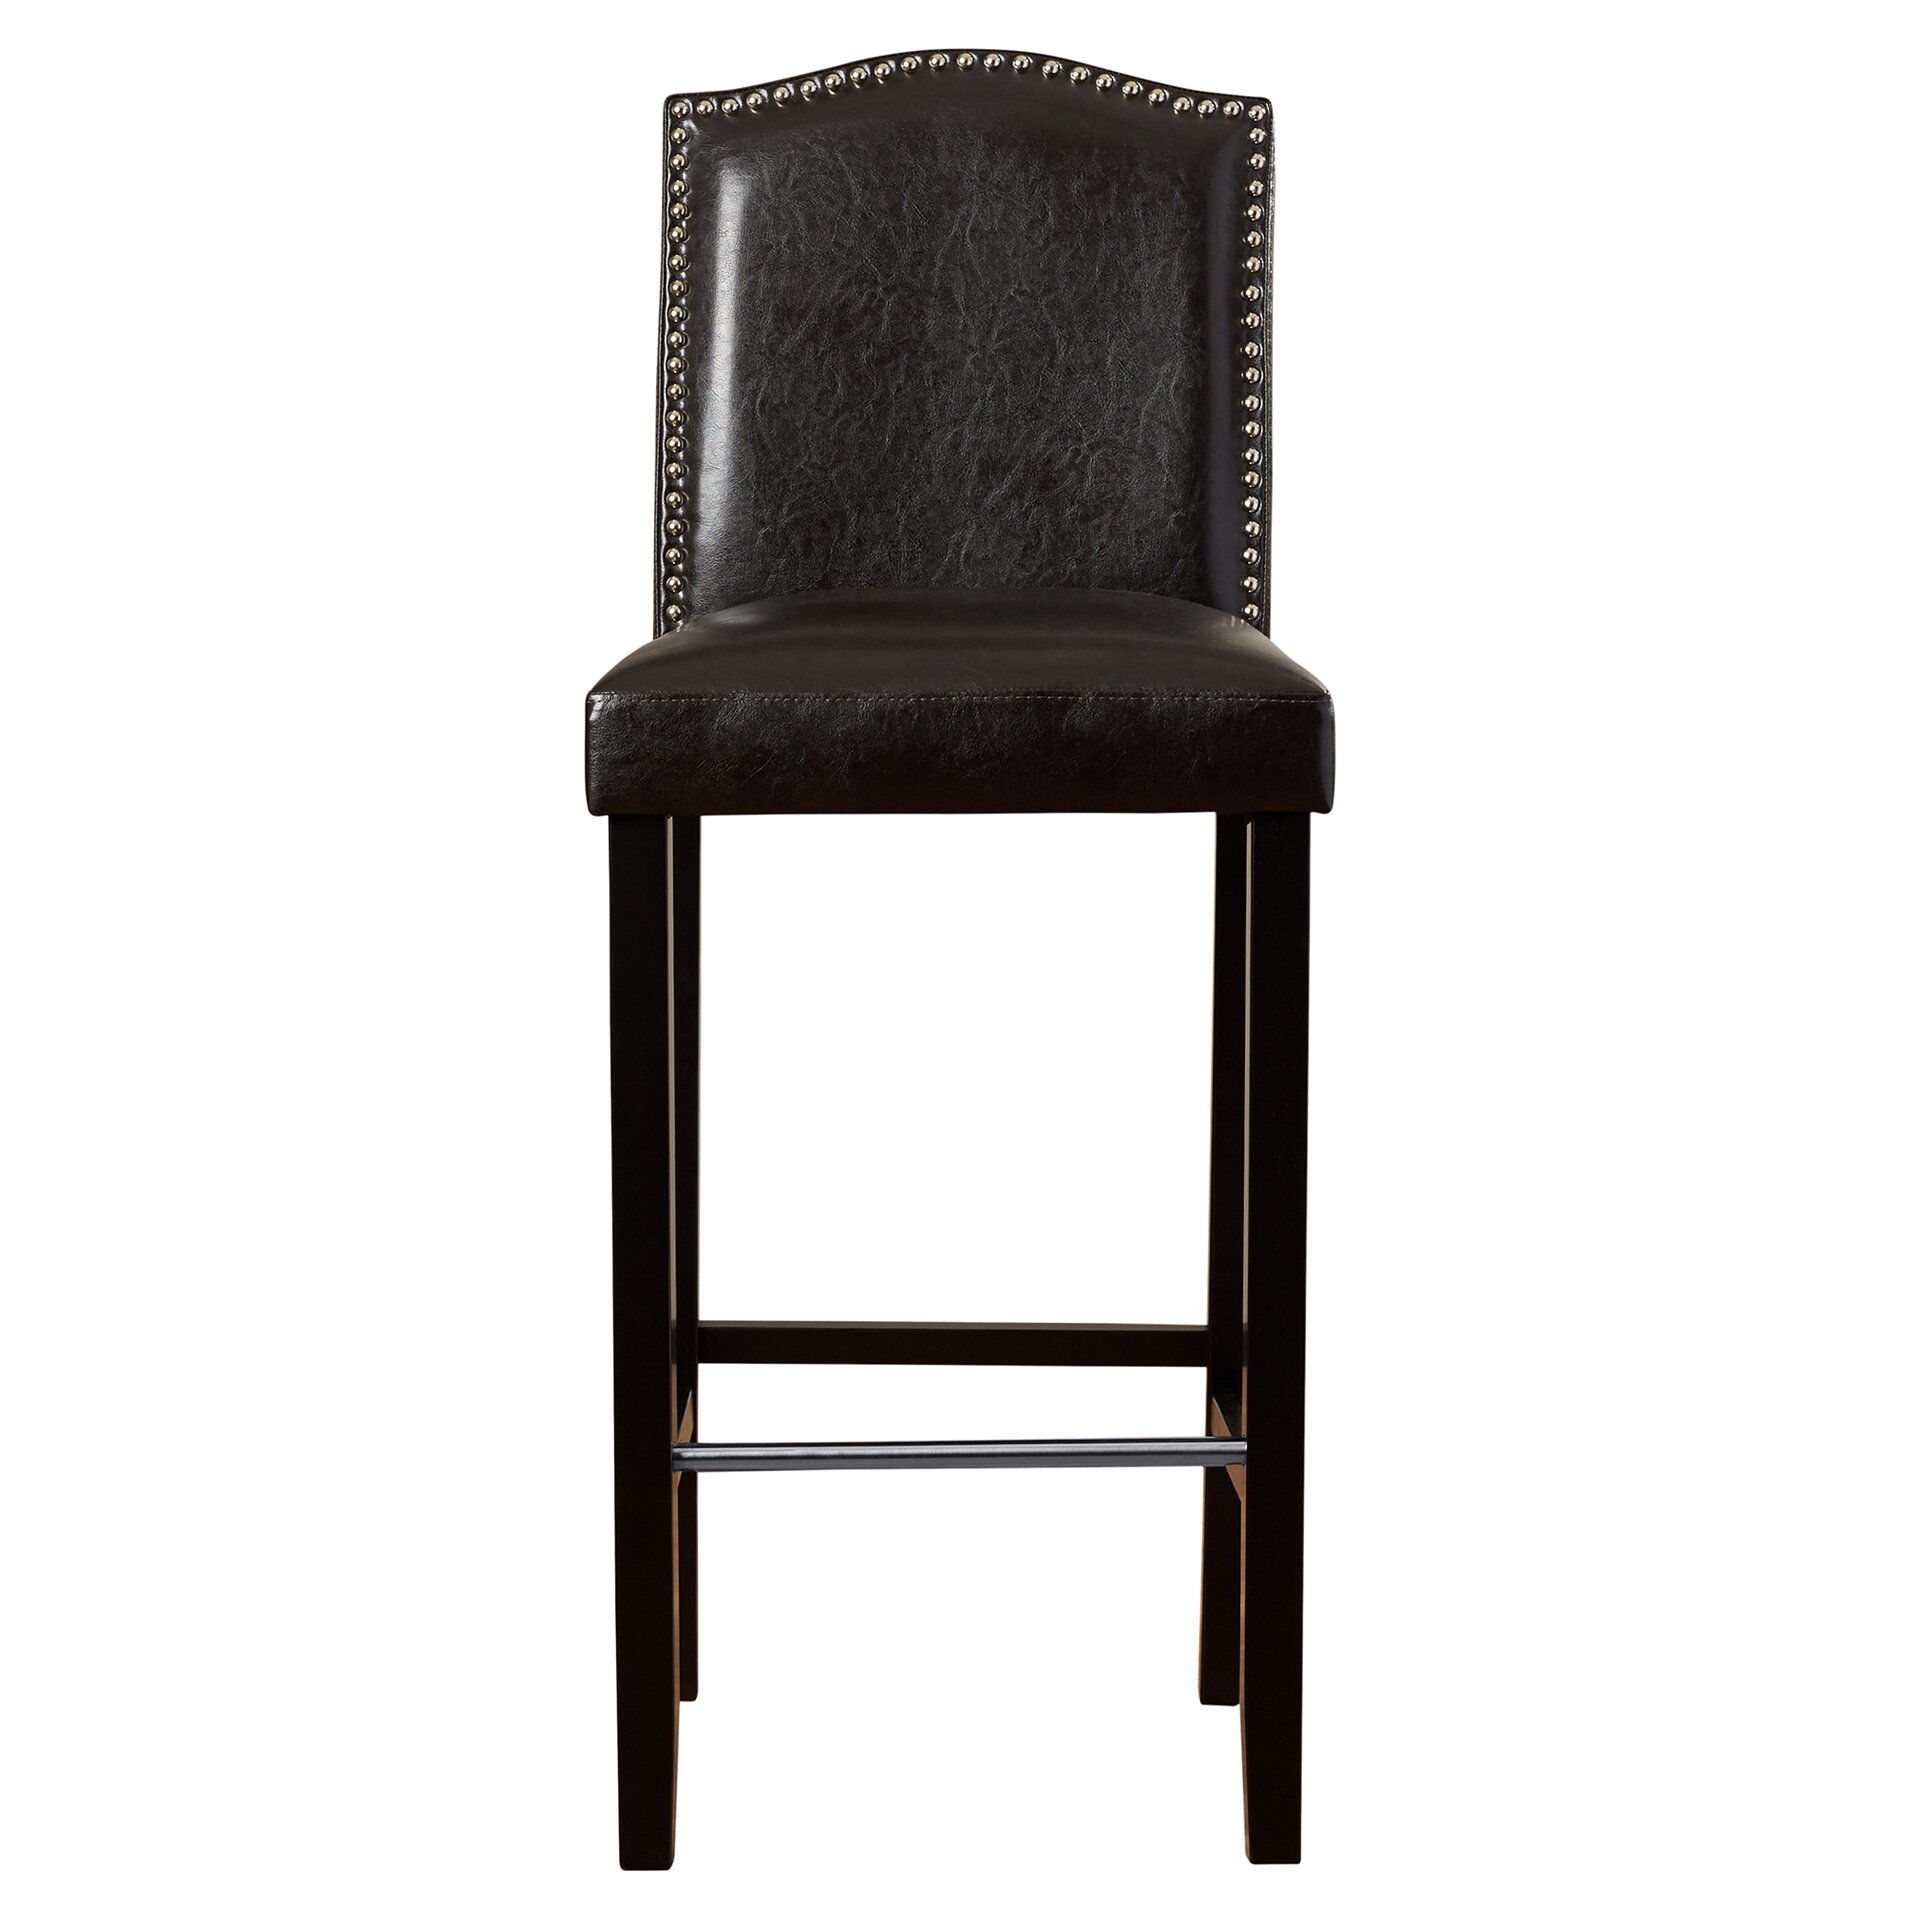 Rosalind Wheeler Andraid 305quot Bar Stool amp Reviews Wayfair : 305 Bar Stool with Cushion RSWH1052 from www.wayfair.com size 1920 x 1920 jpeg 253kB